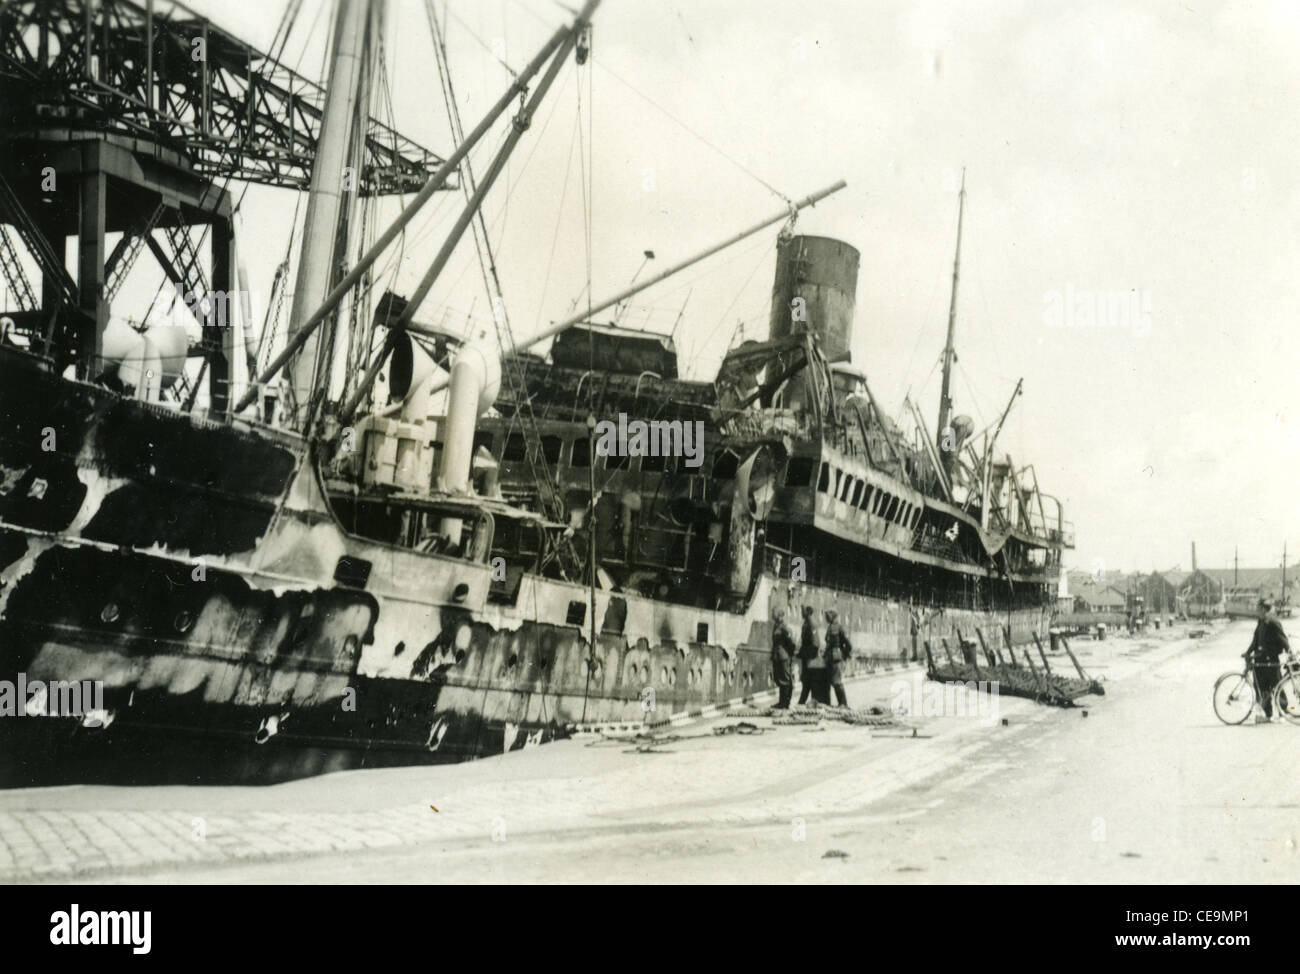 destroyed ship with Nazi German soldiers standing next during WWII european theater - Stock Image